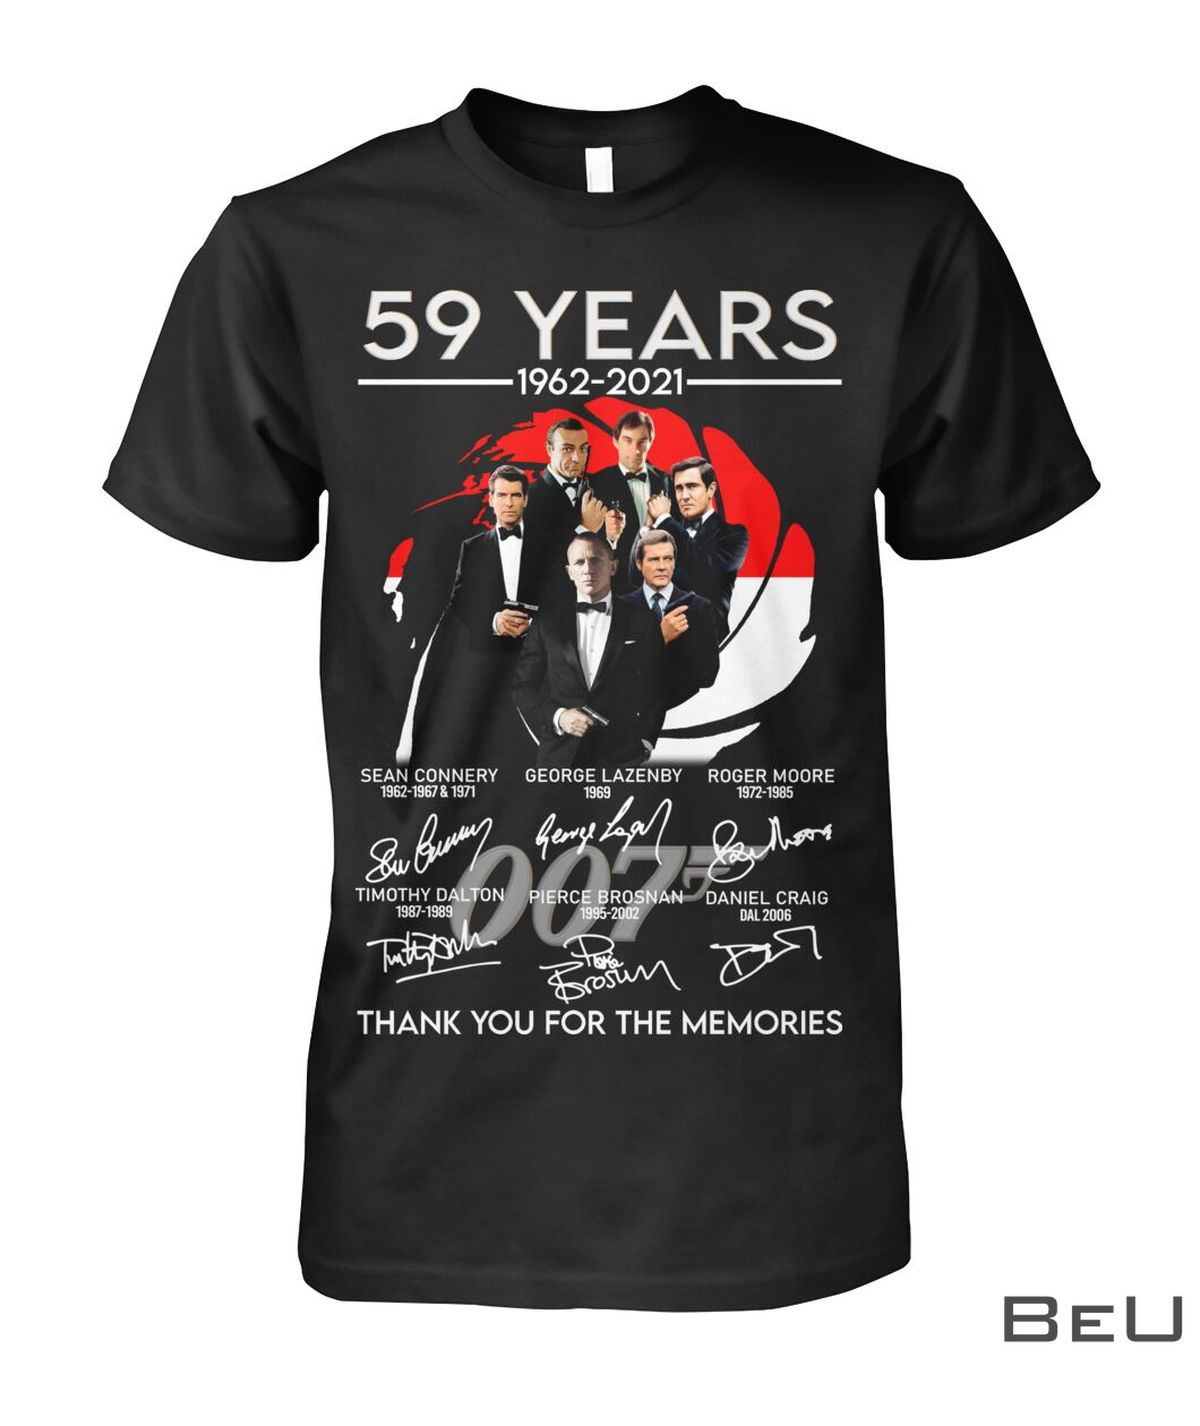 59 Years 1962-2021 Thank You For The Memories Shirt